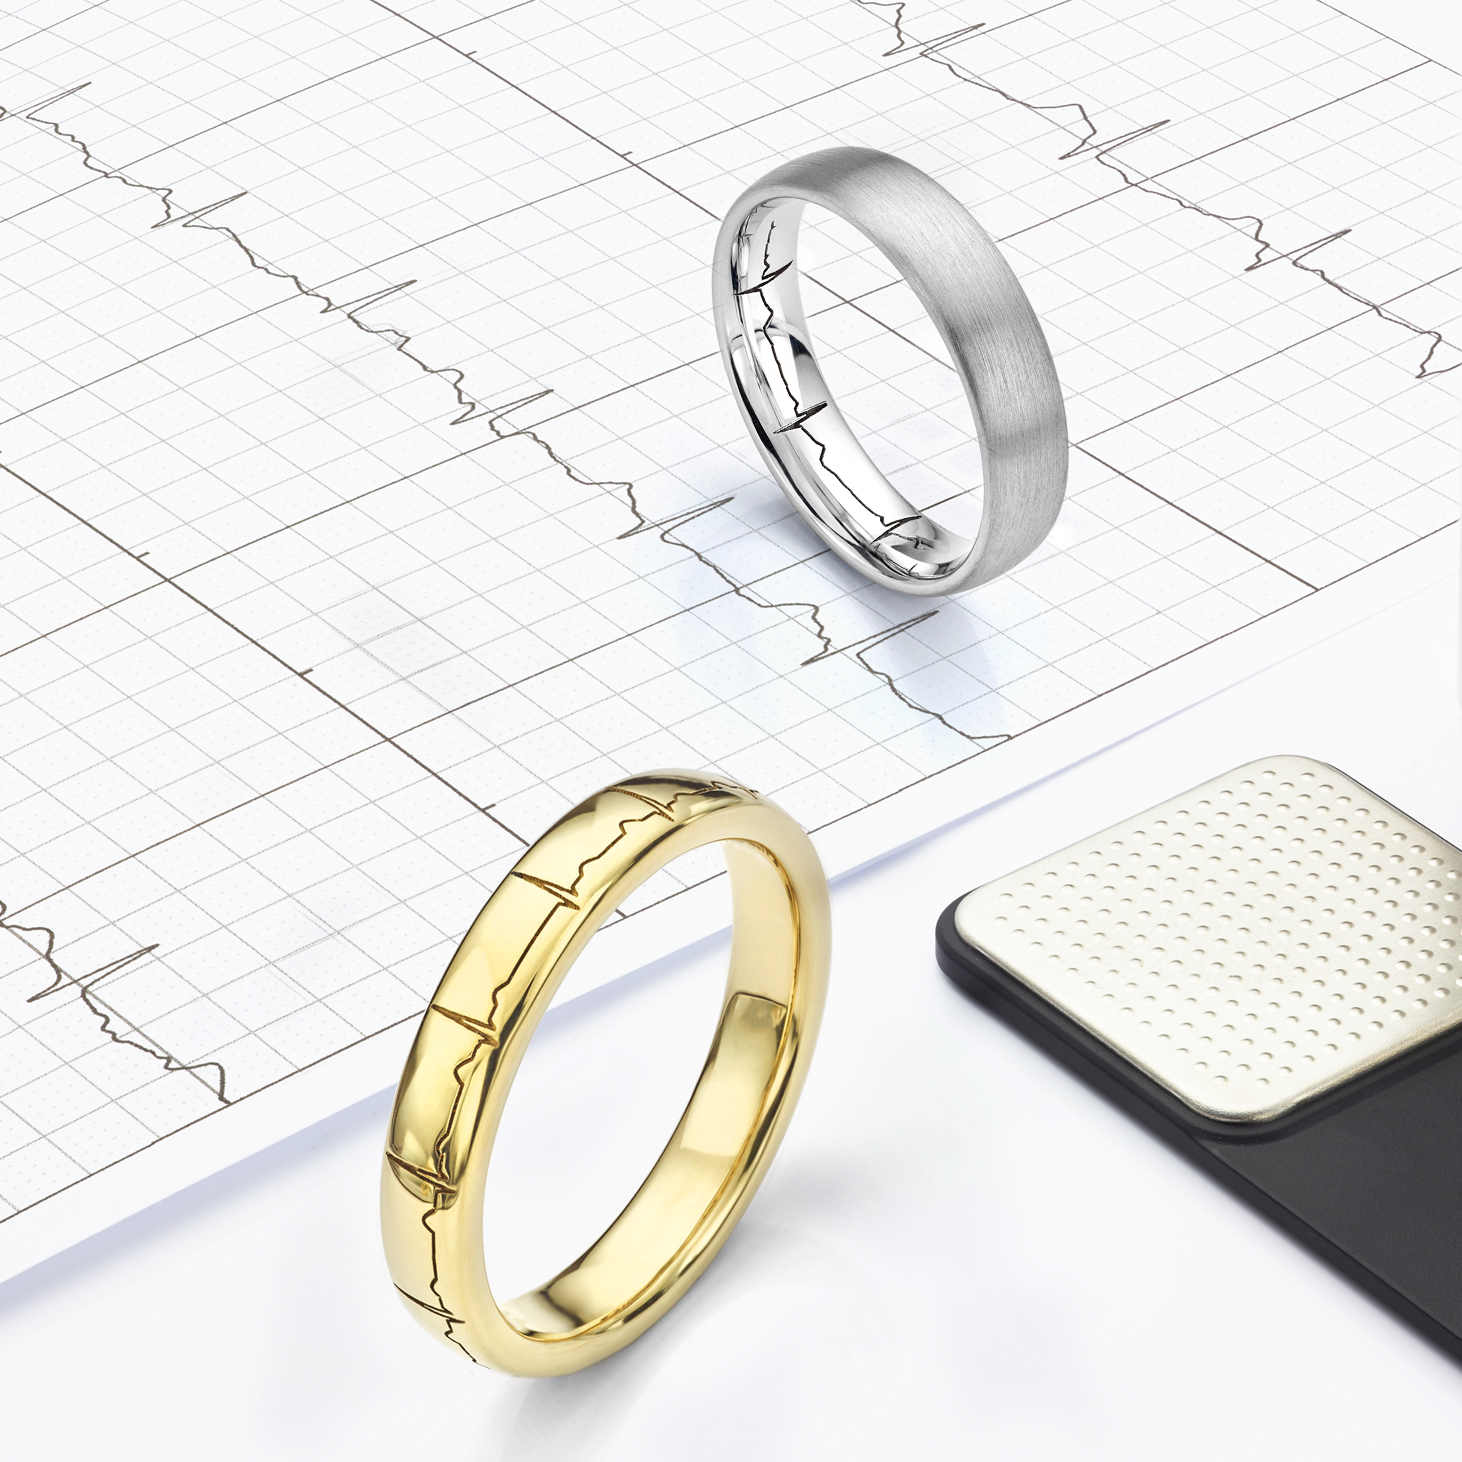 When to order your wedding rings, showing heartbeat rings taking around 5-6 weeks to create